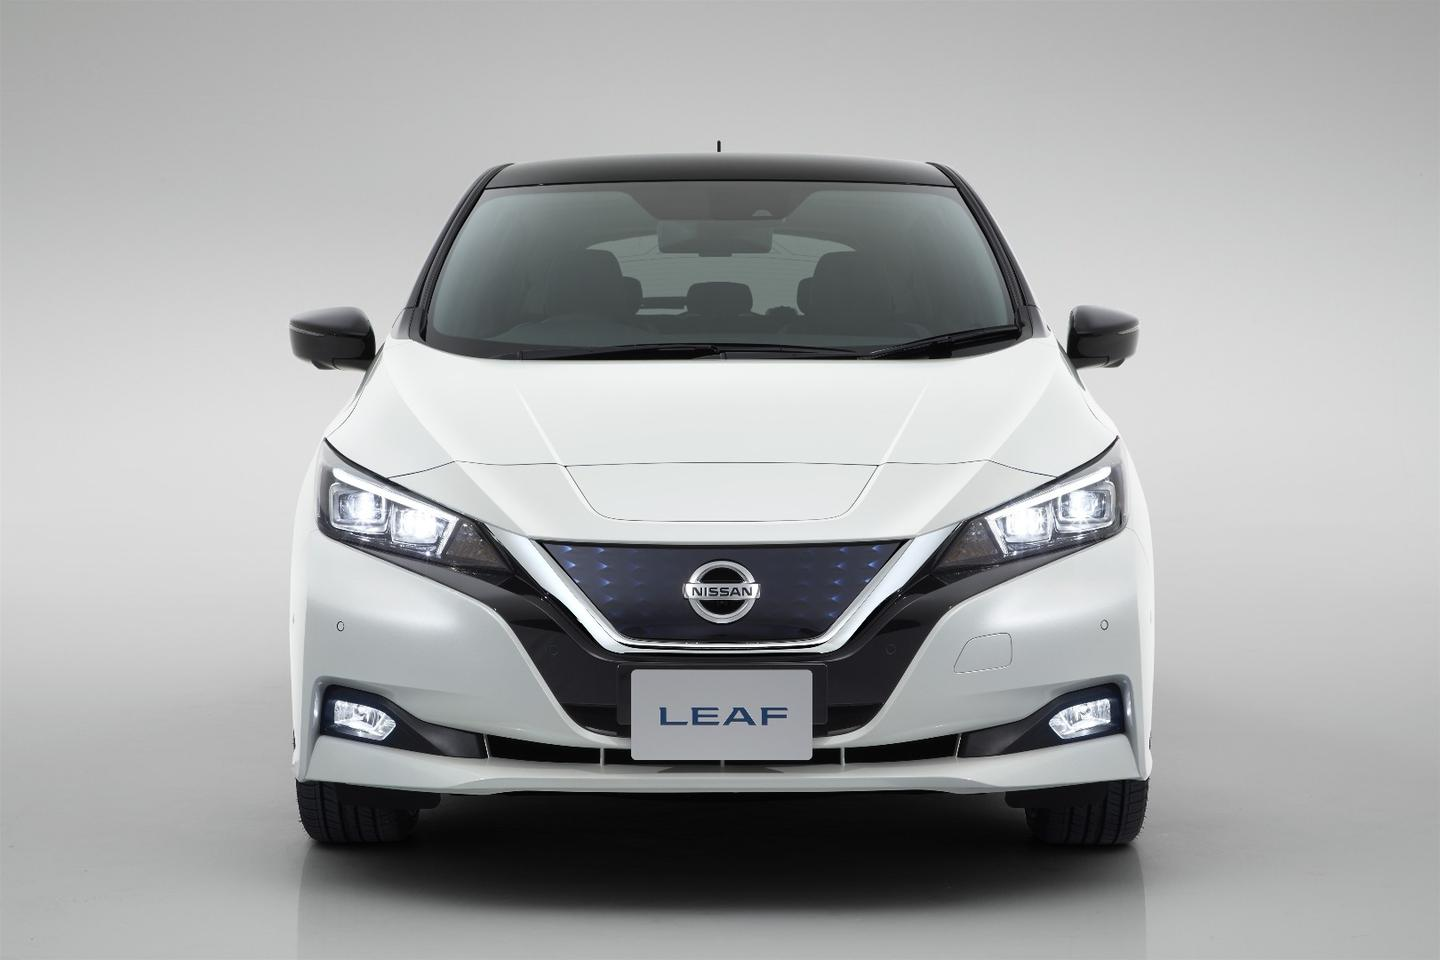 The aerodynamic nose of the new Nissan Leaf